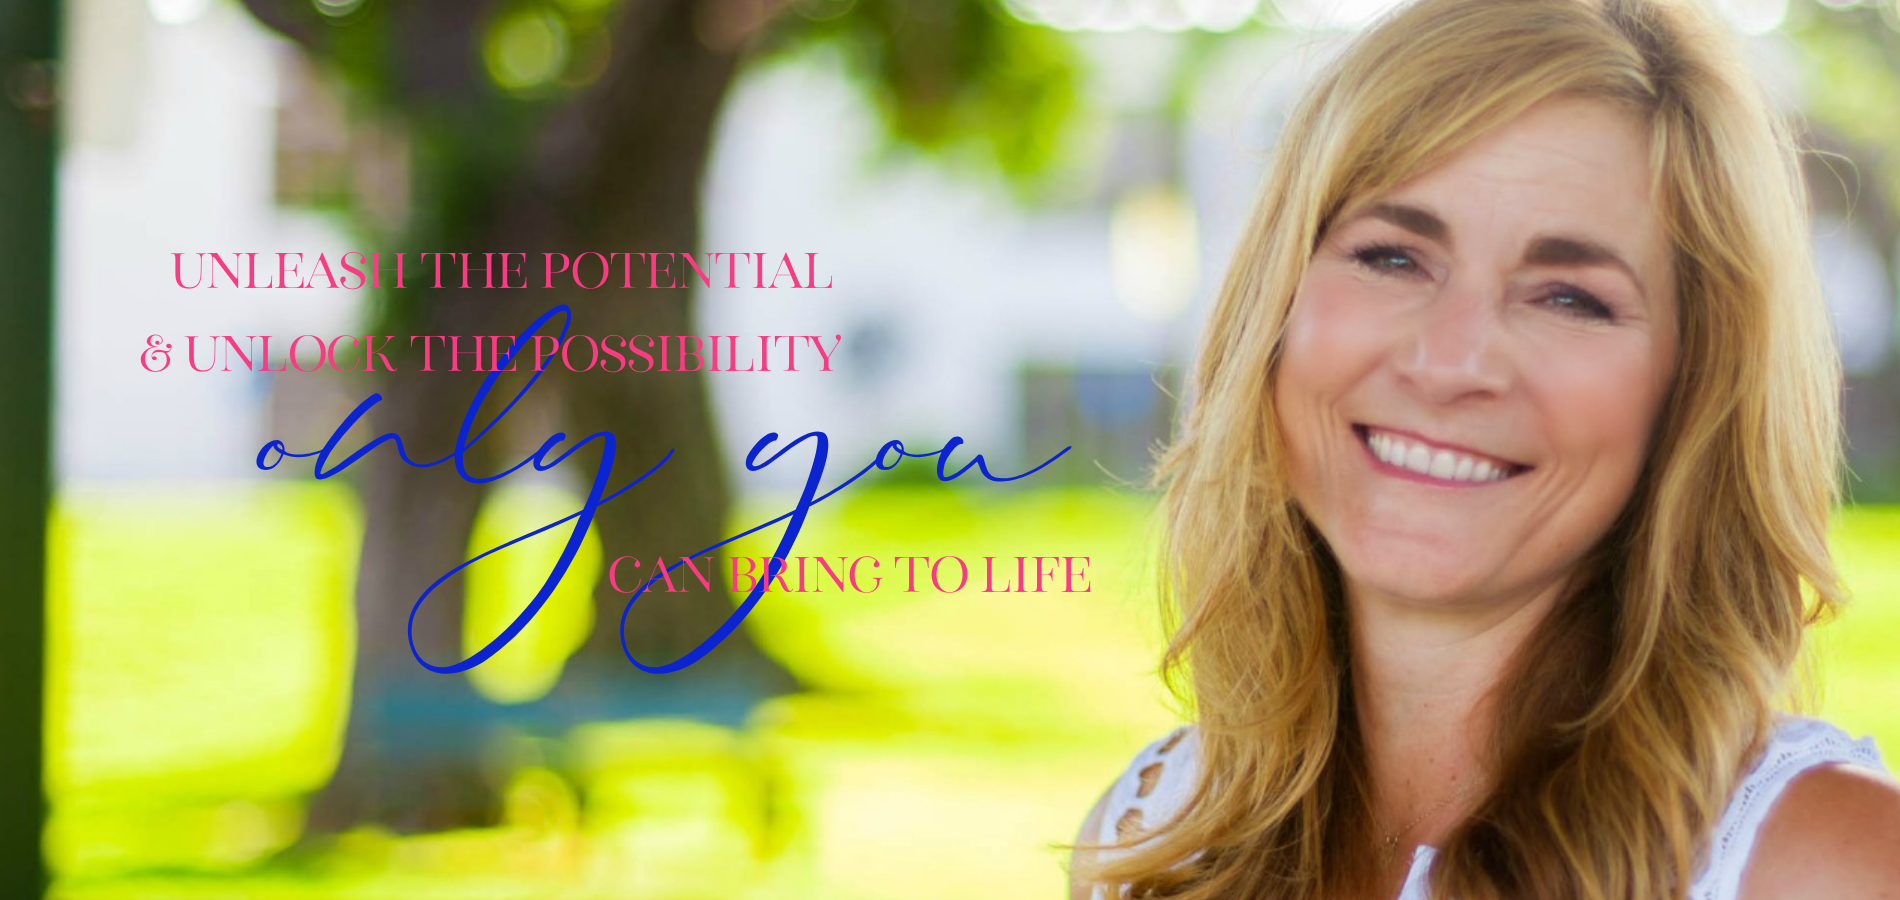 Unlock potential and possibility